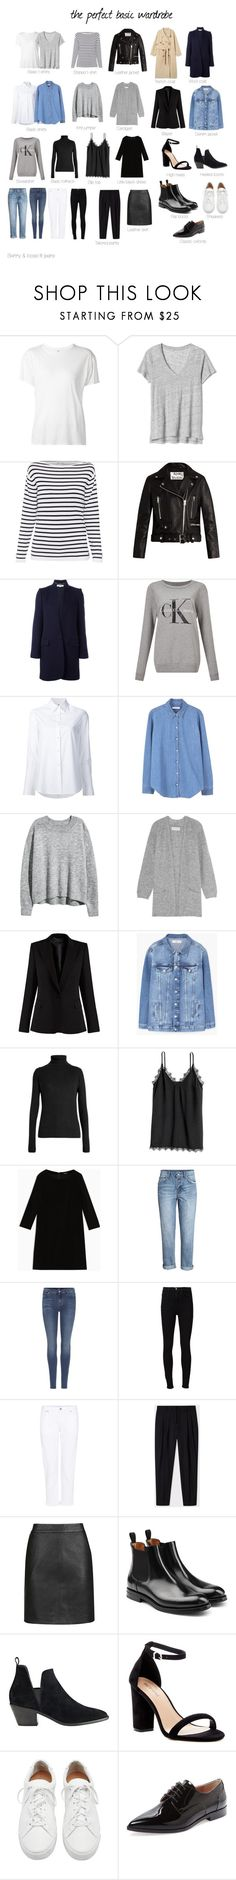 """""""The perfect basic wardrobe"""" by uselessdk ❤ liked on Polyvore featuring R13, Acne Studios, STELLA McCARTNEY, Calvin Klein, Misha Nonoo, MANGO, By Malene Birger, Raey, Max&Co. and 7 For All Mankind"""